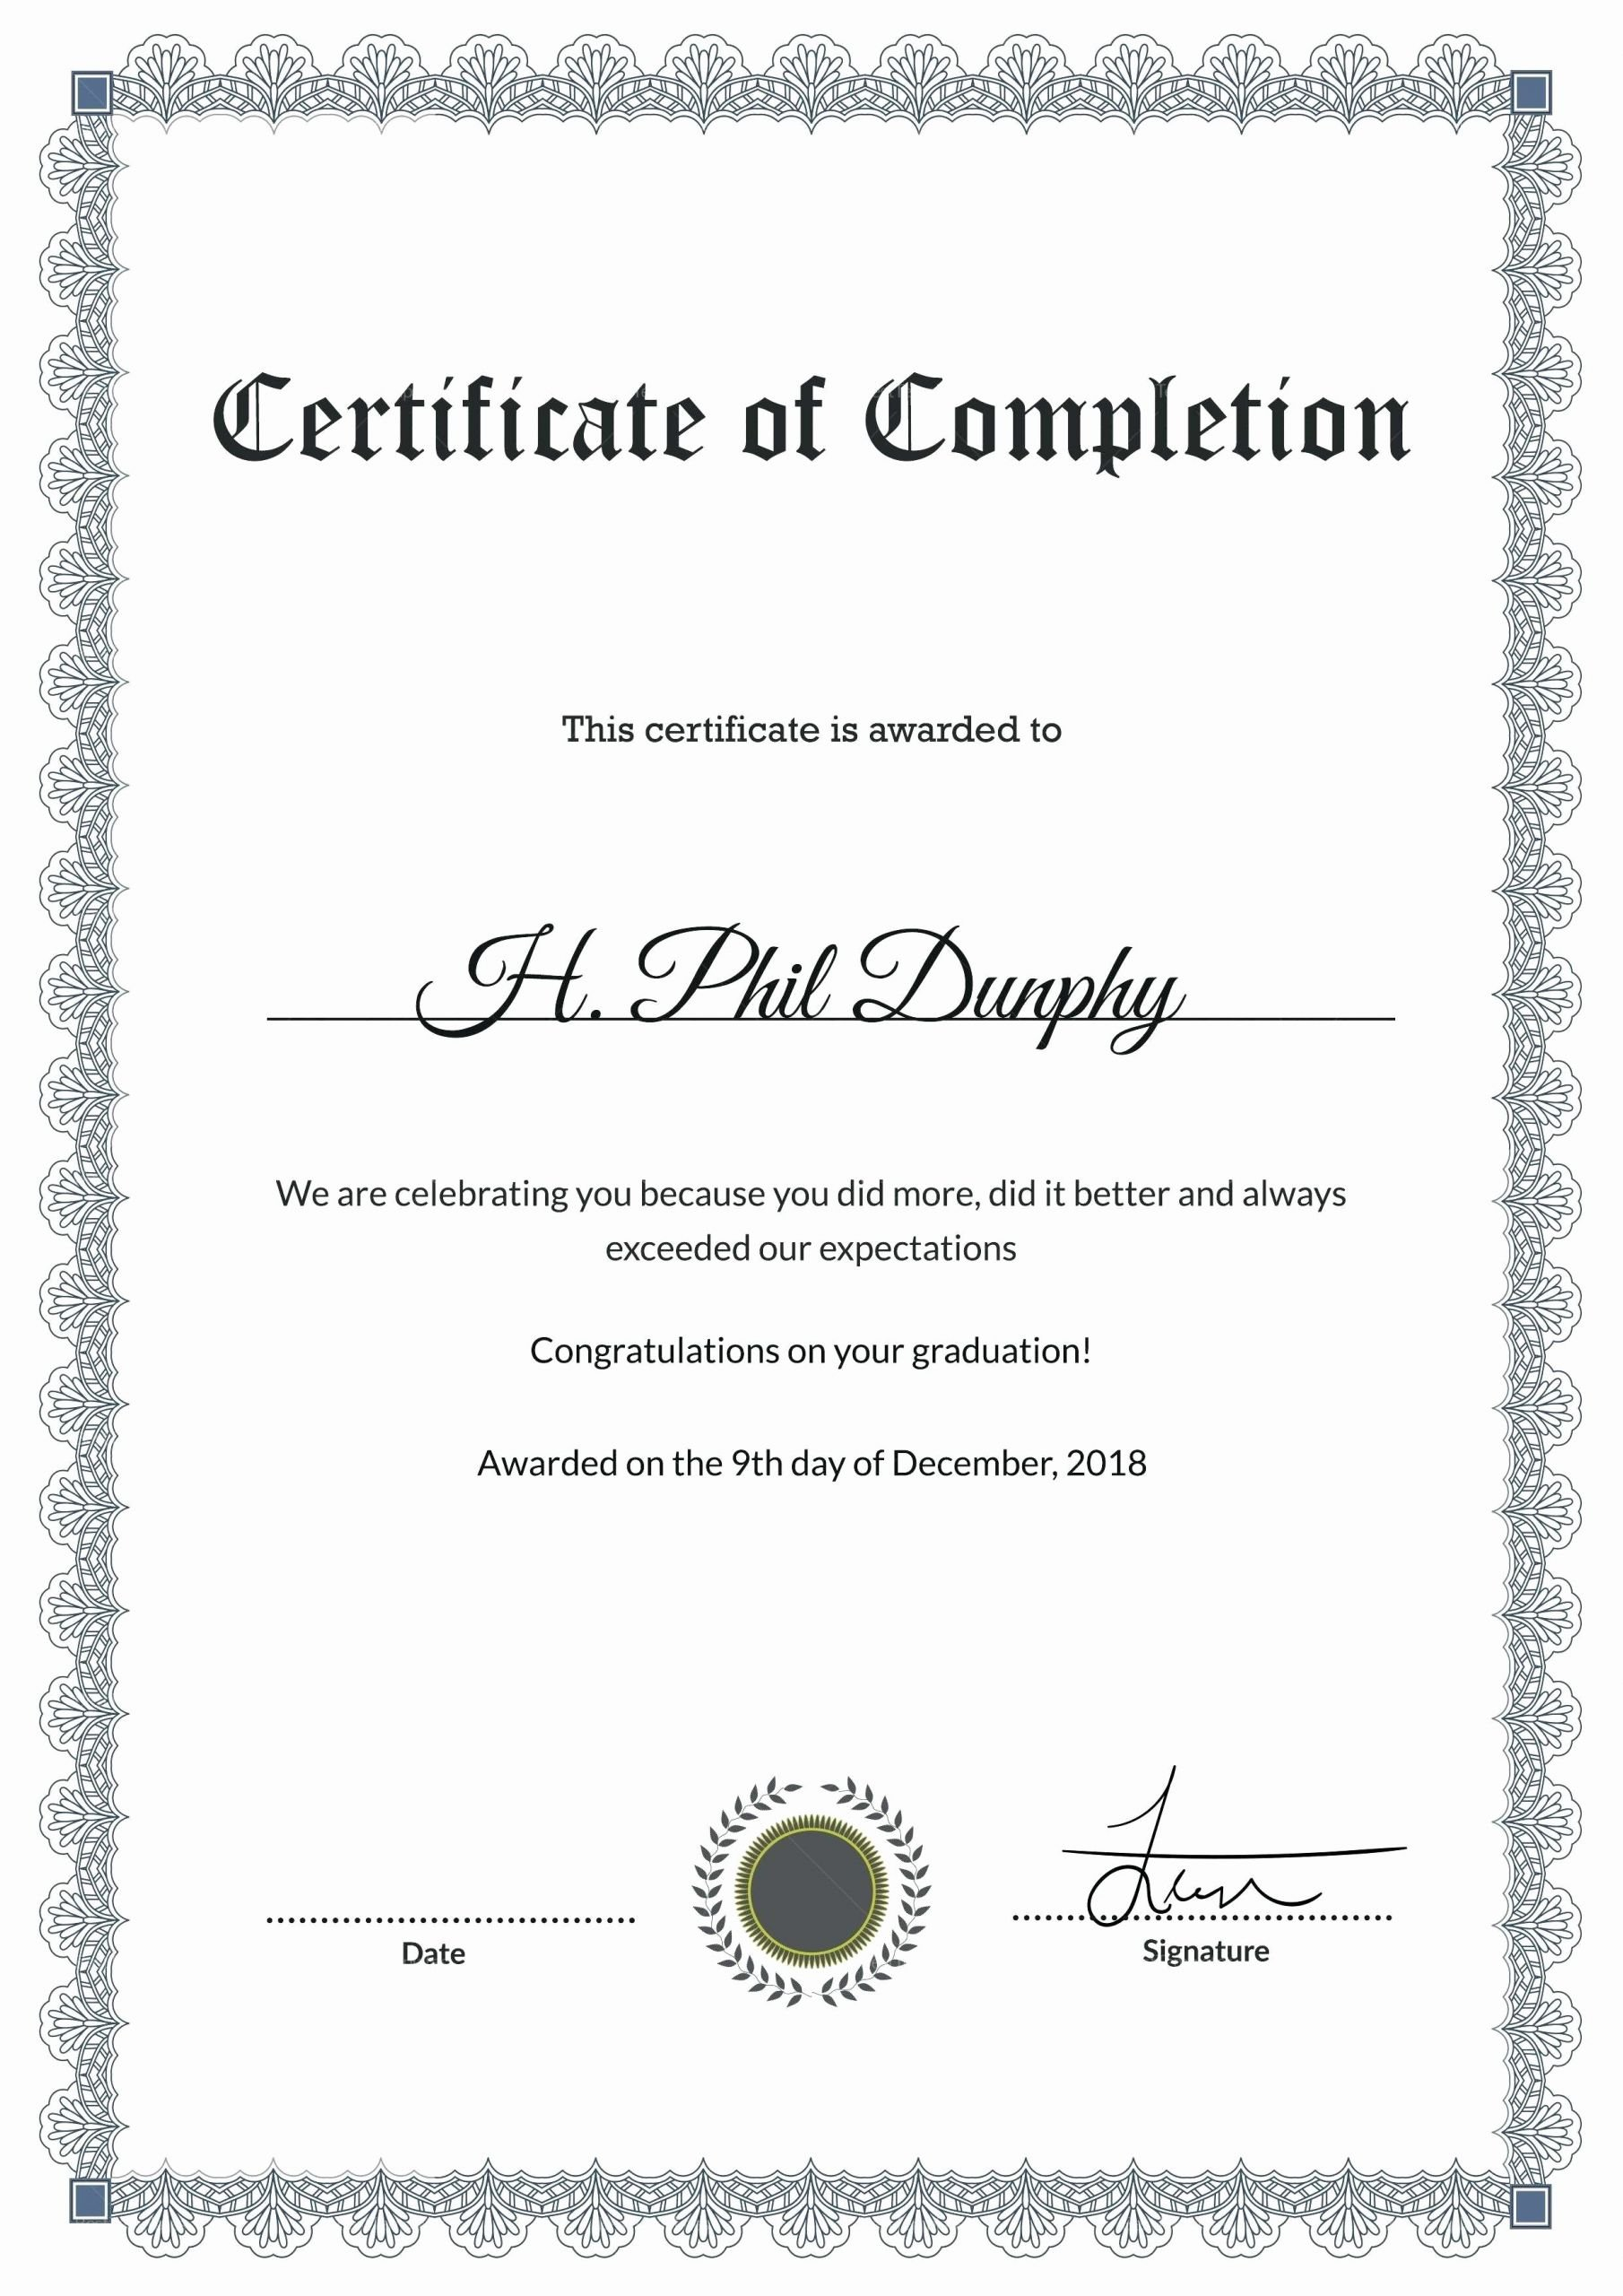 Anger Management Certificate Of Completion Template Luxury Anger Management Certificate Pletion Plete Anger